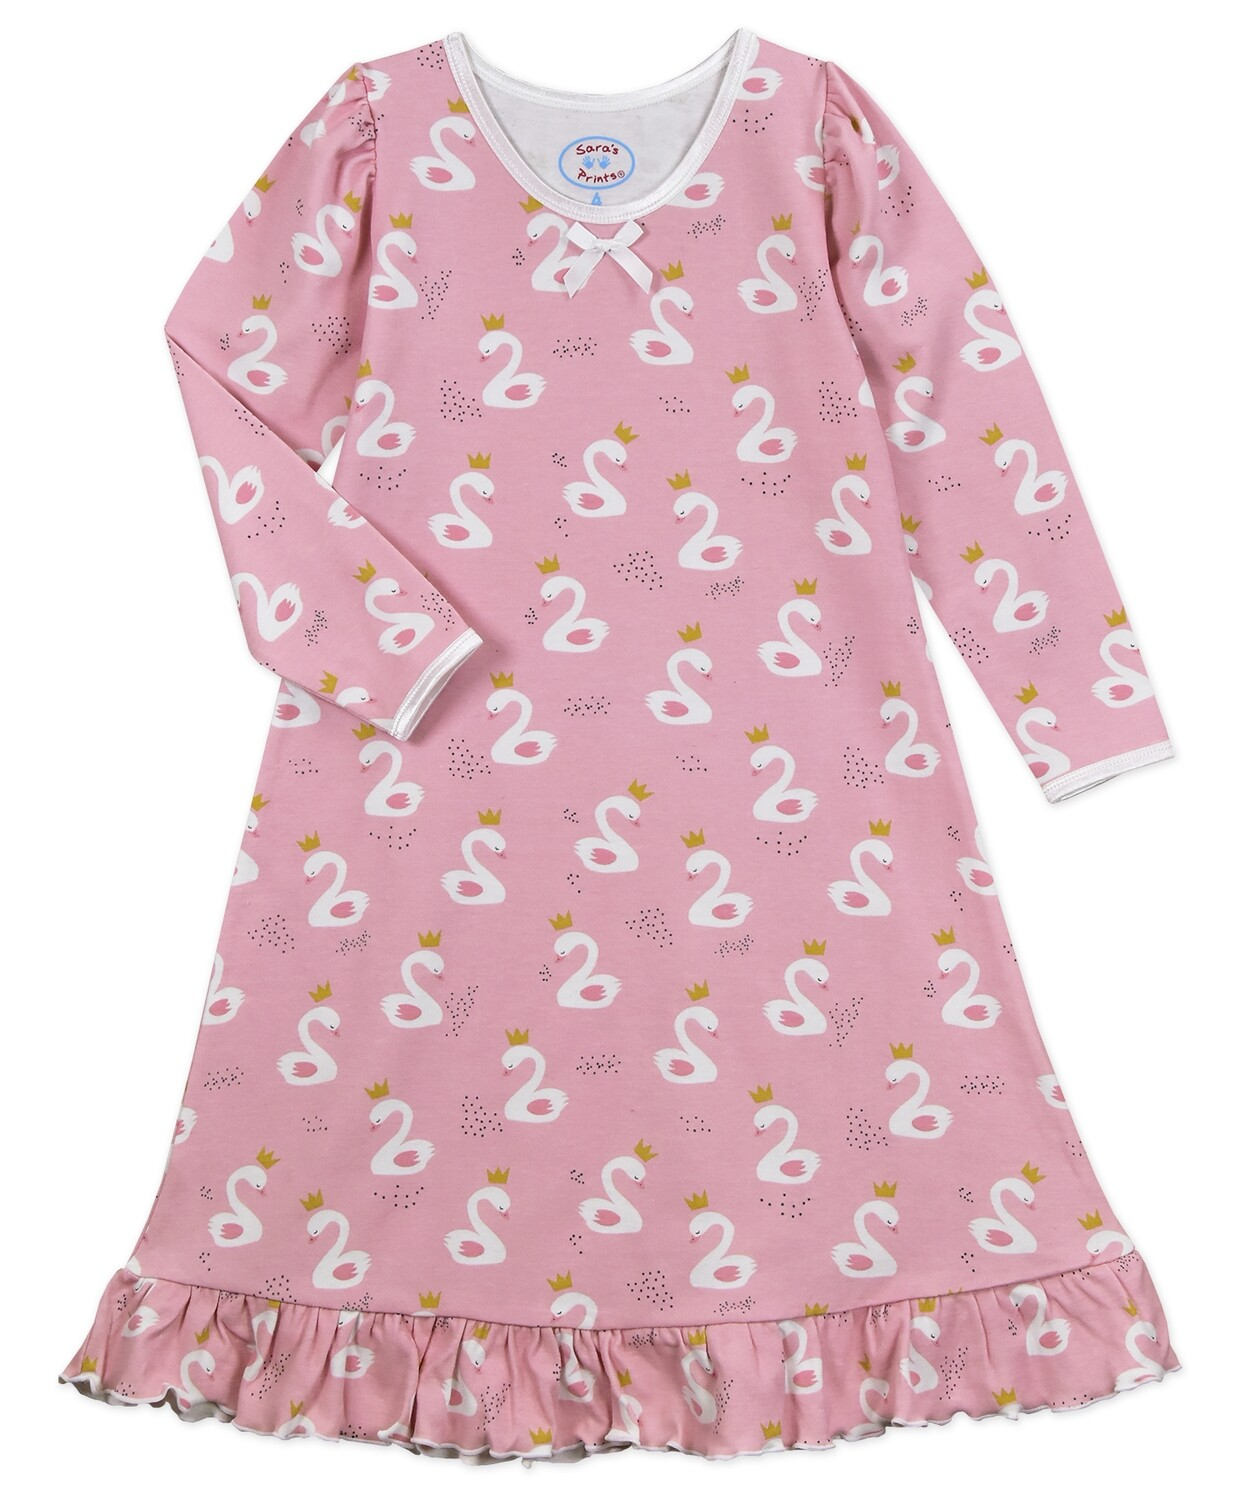 Saras Prints Super Soft Pink Nightgown